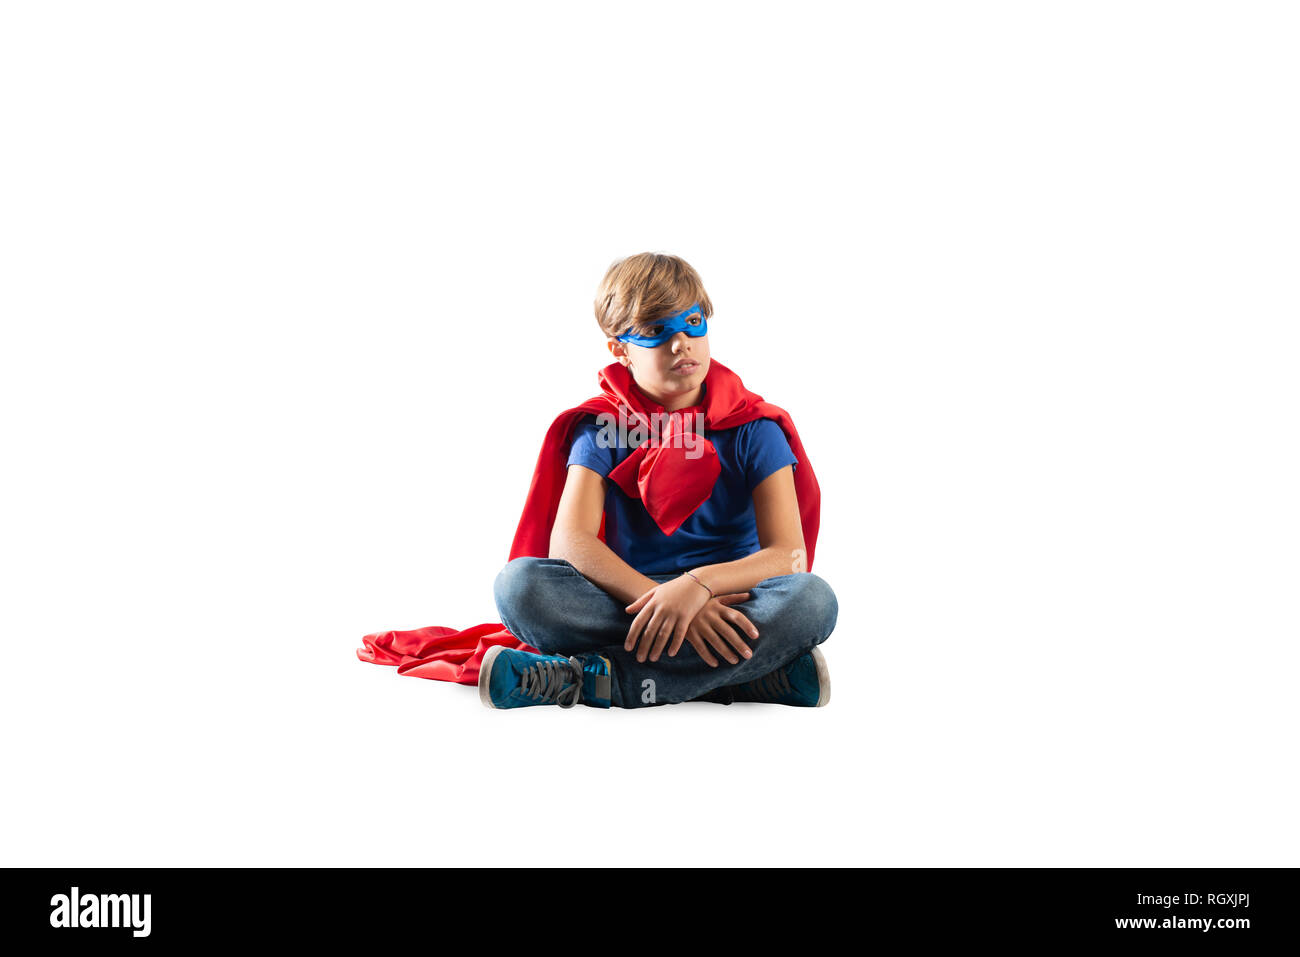 Superhero kid sitting on a wall that dreams. Isolated on white background - Stock Image